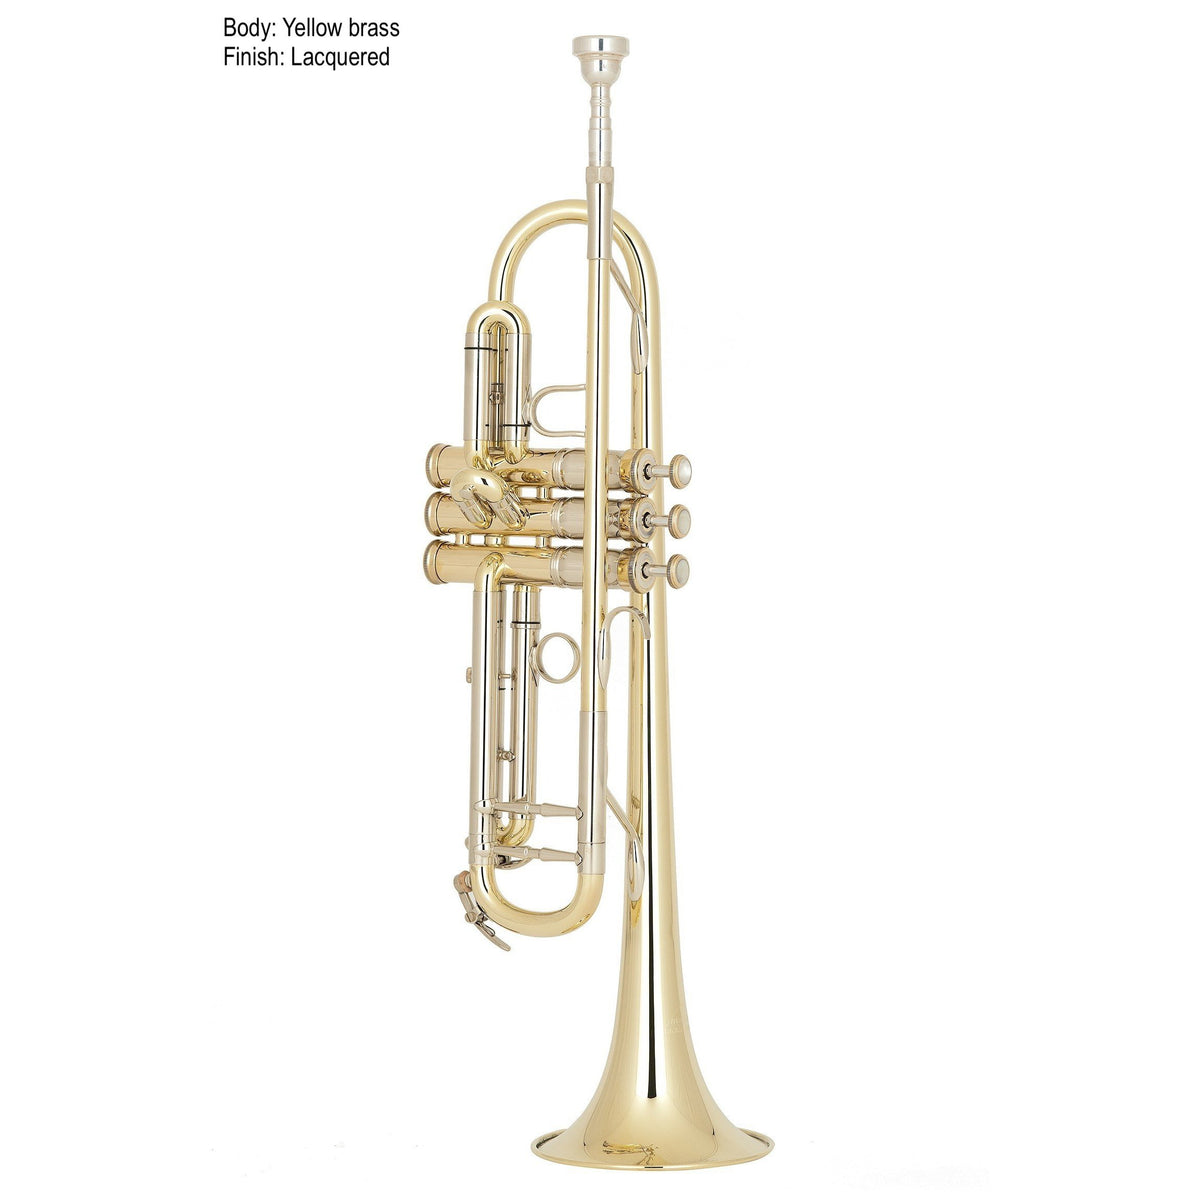 Miraphone - M3050 Bb Piston Trumpets-Trumpet-Miraphone-Music Elements